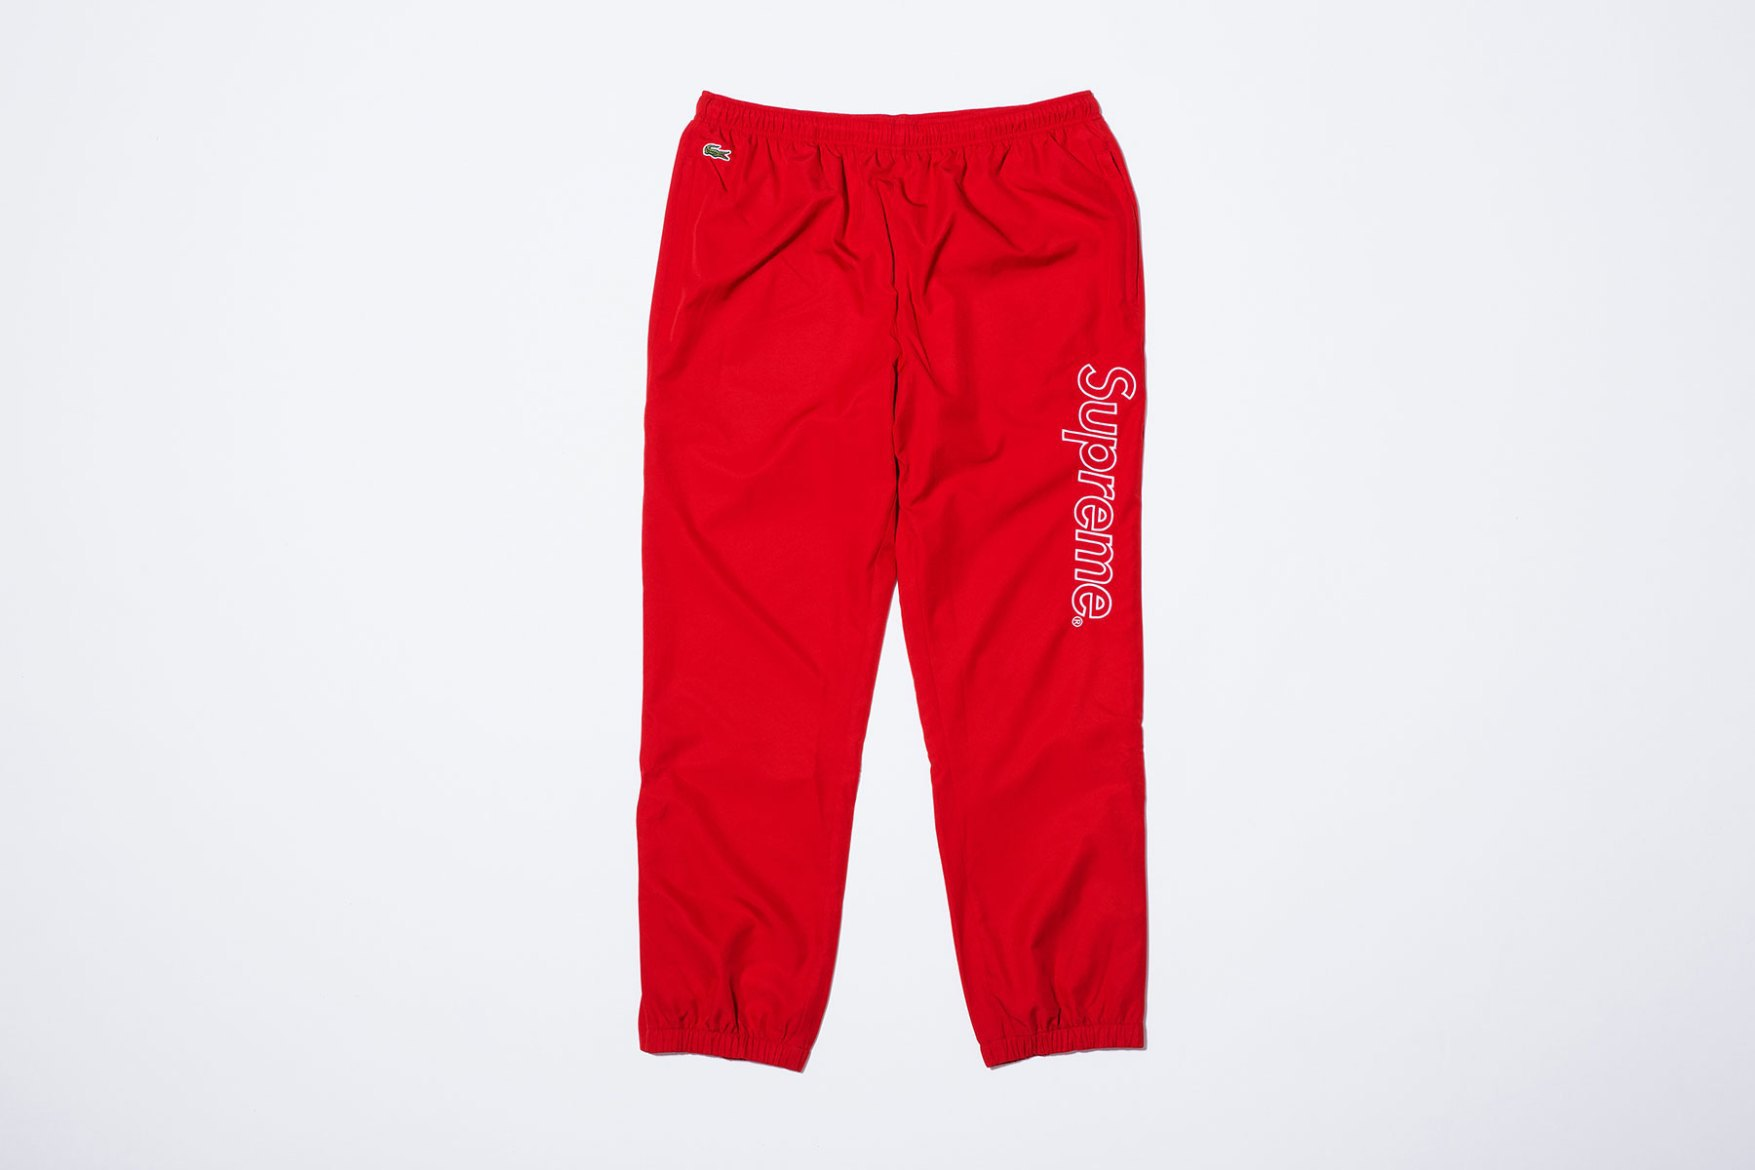 lacoste-supreme-red-pants-2017-spring-summer-8